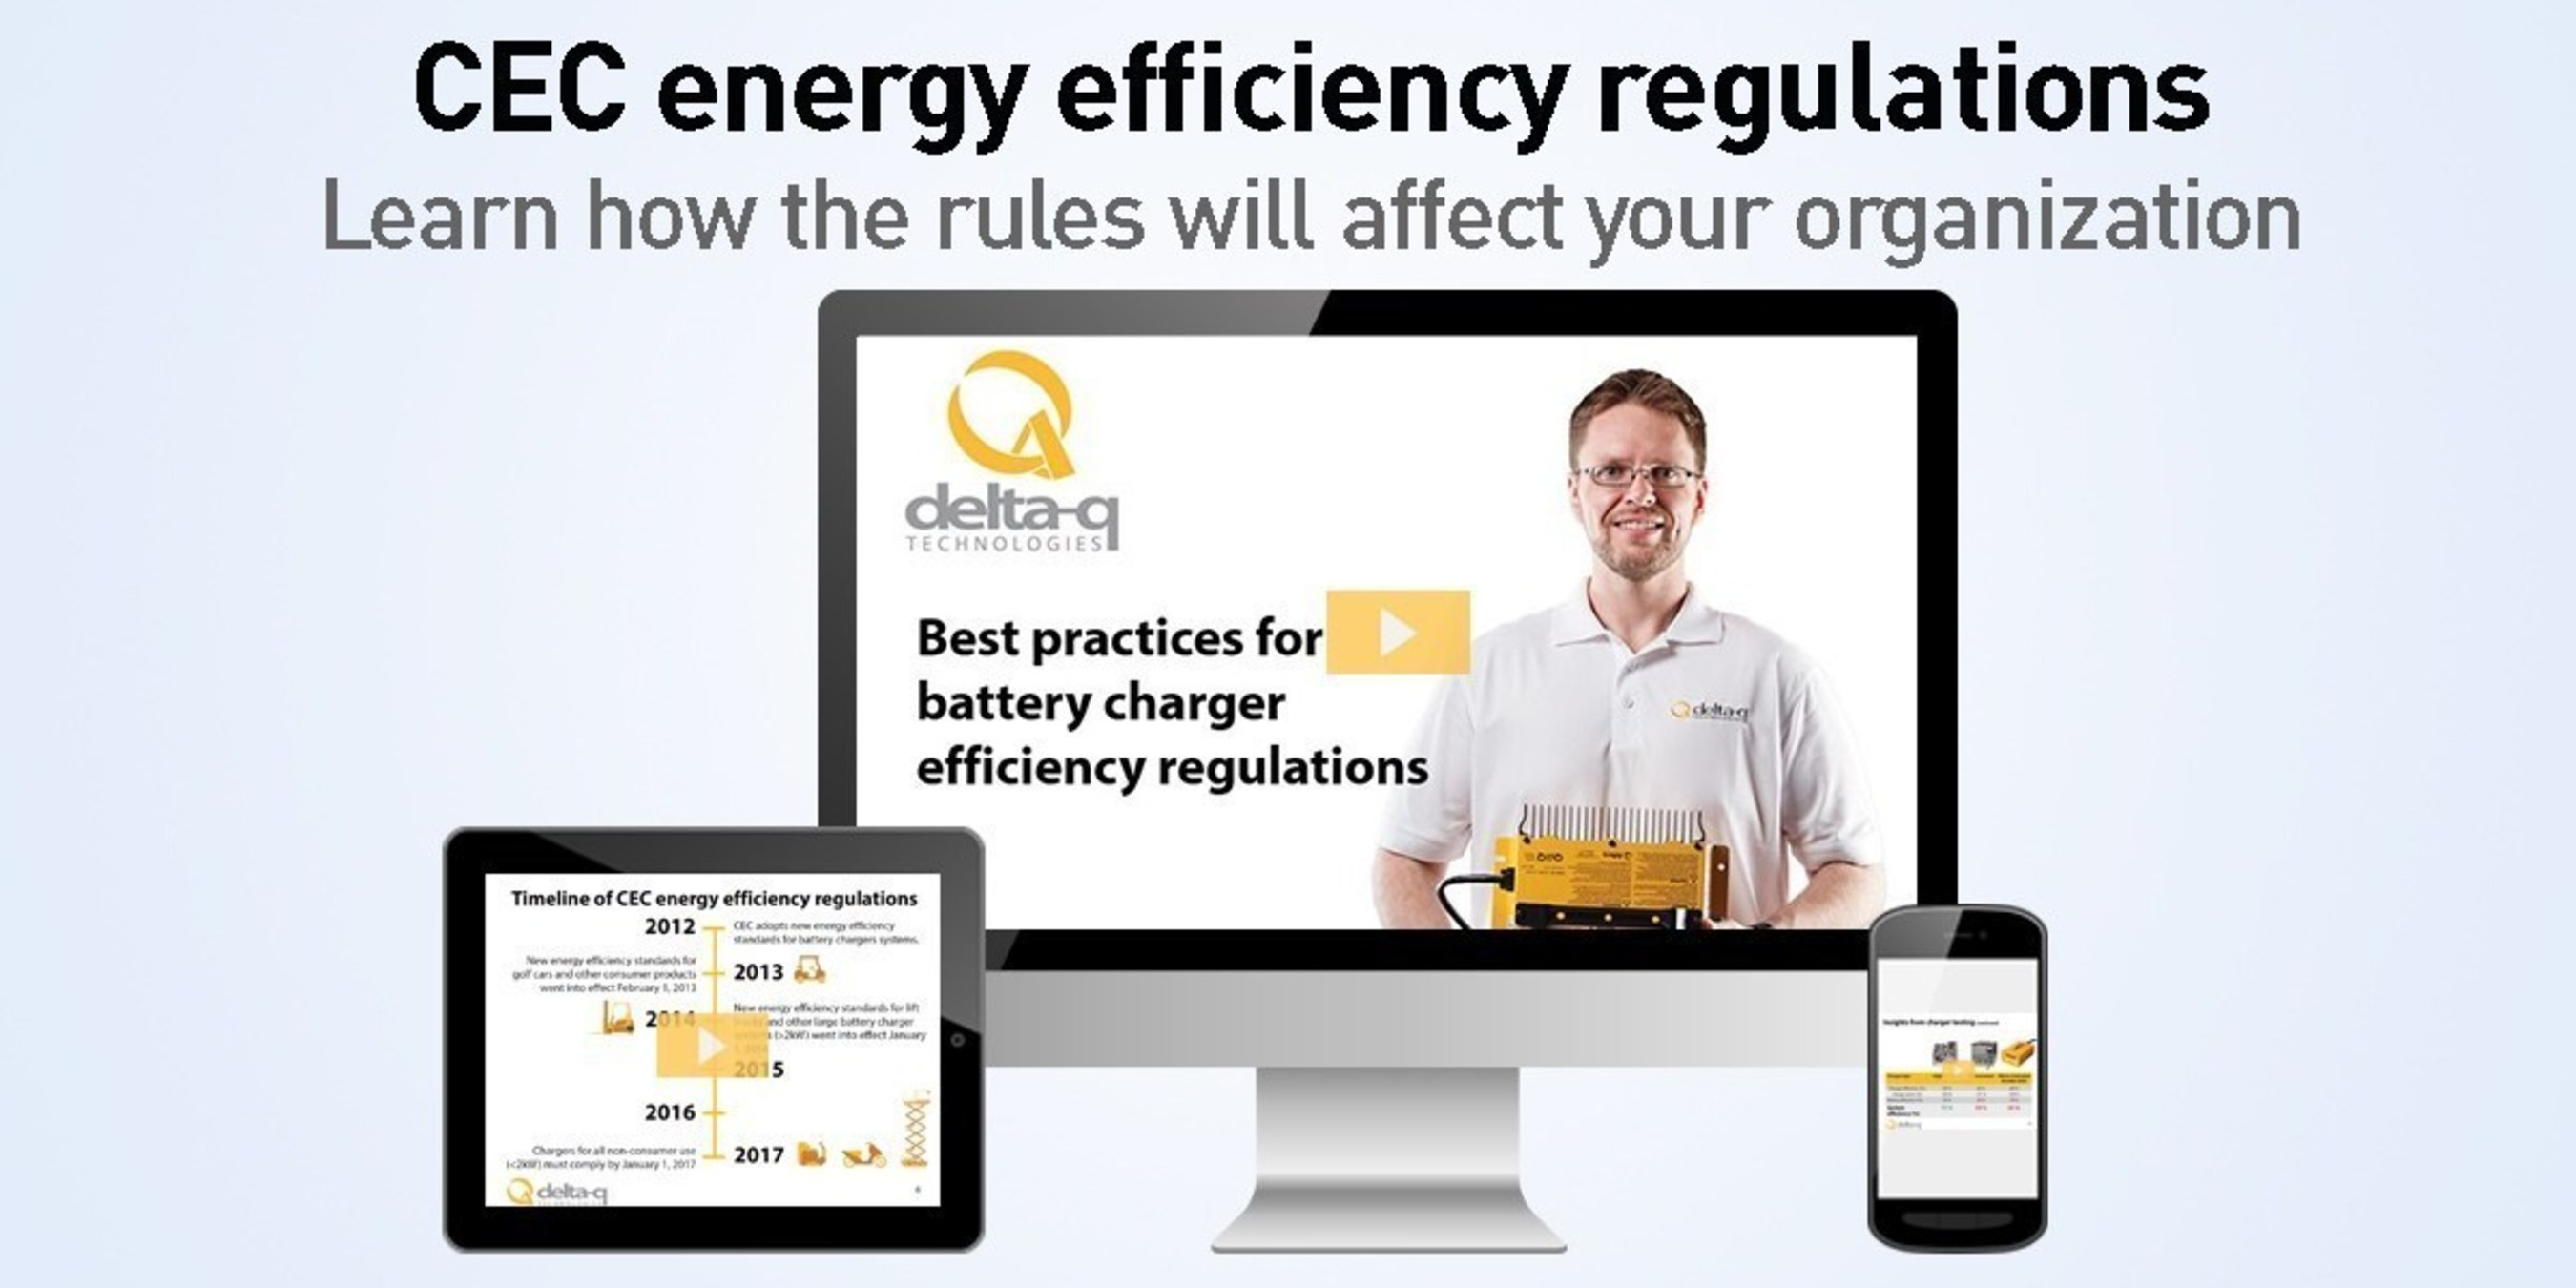 Delta-Q Technologies Provides Insights And Guidance Into Upcoming CEC Energy Efficiency Regulations For Industrial Battery Chargers